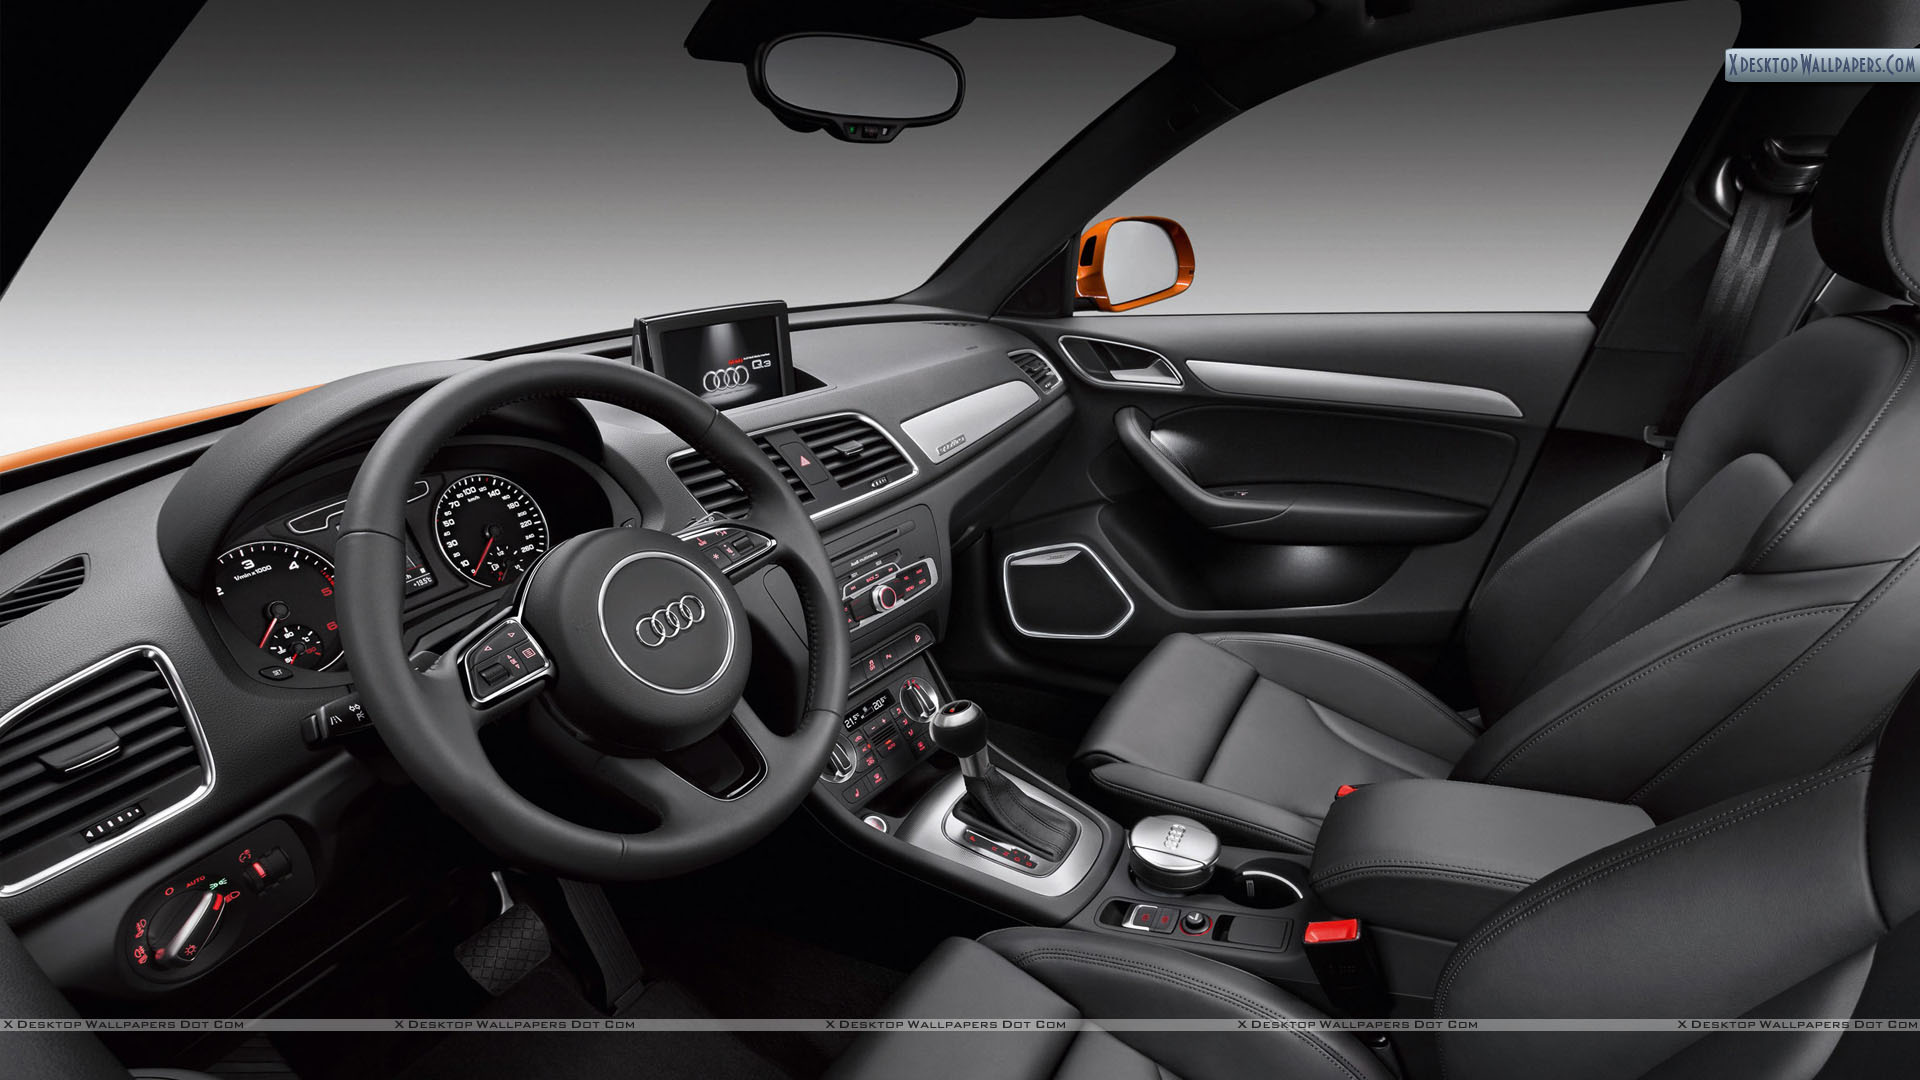 Audi Q3 Wallpapers Photos Images In Hd